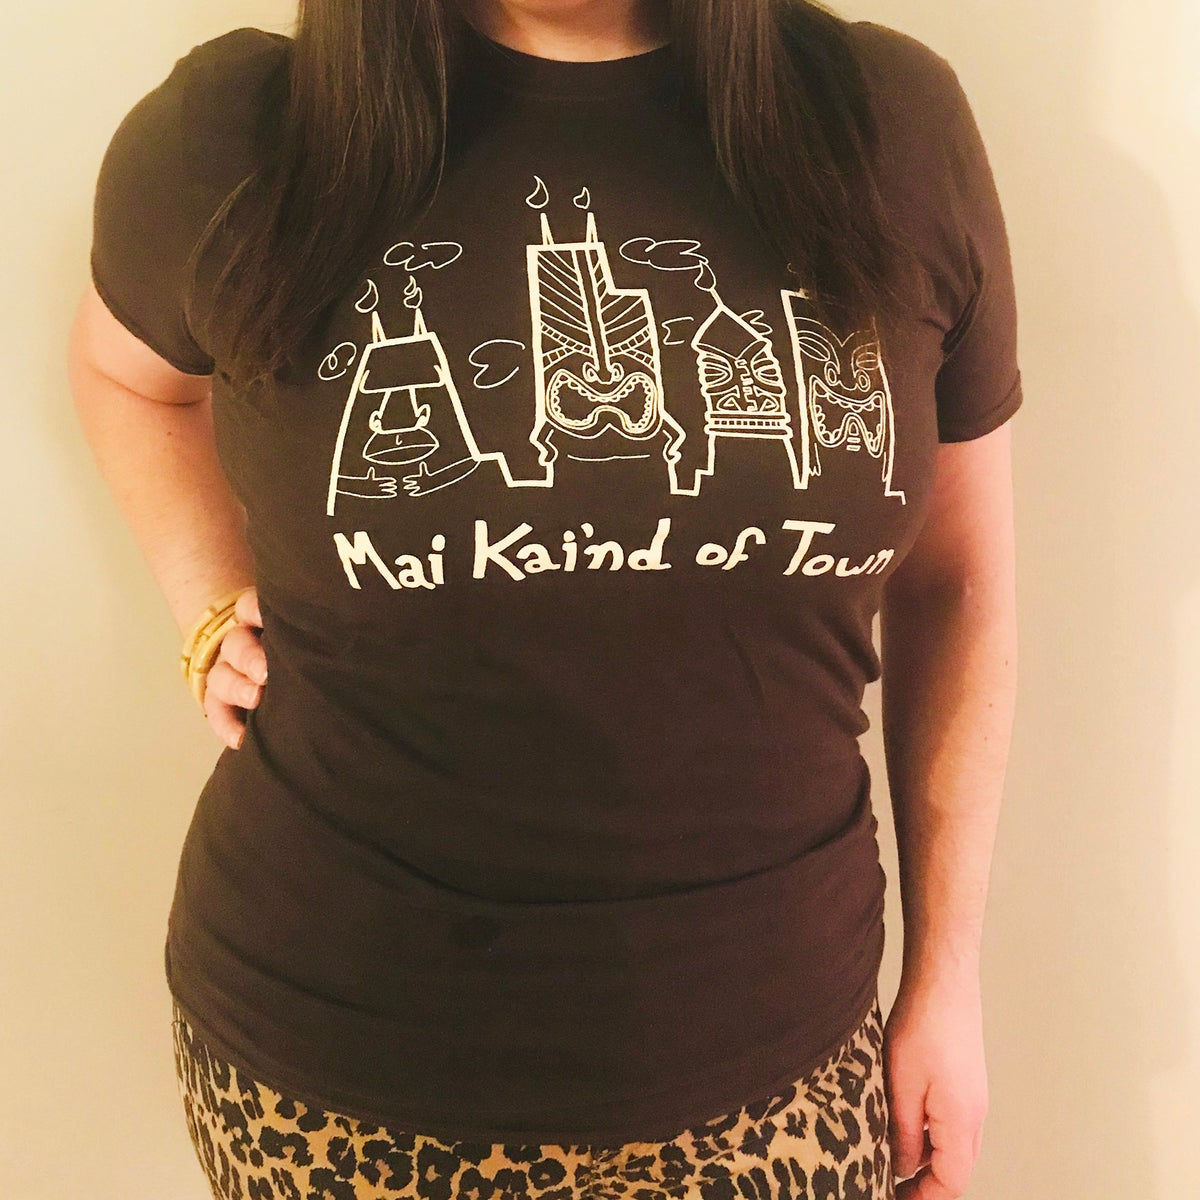 MAI KAI'ND OF TOWN Chicago Skyline Limited Edition T-Shirt